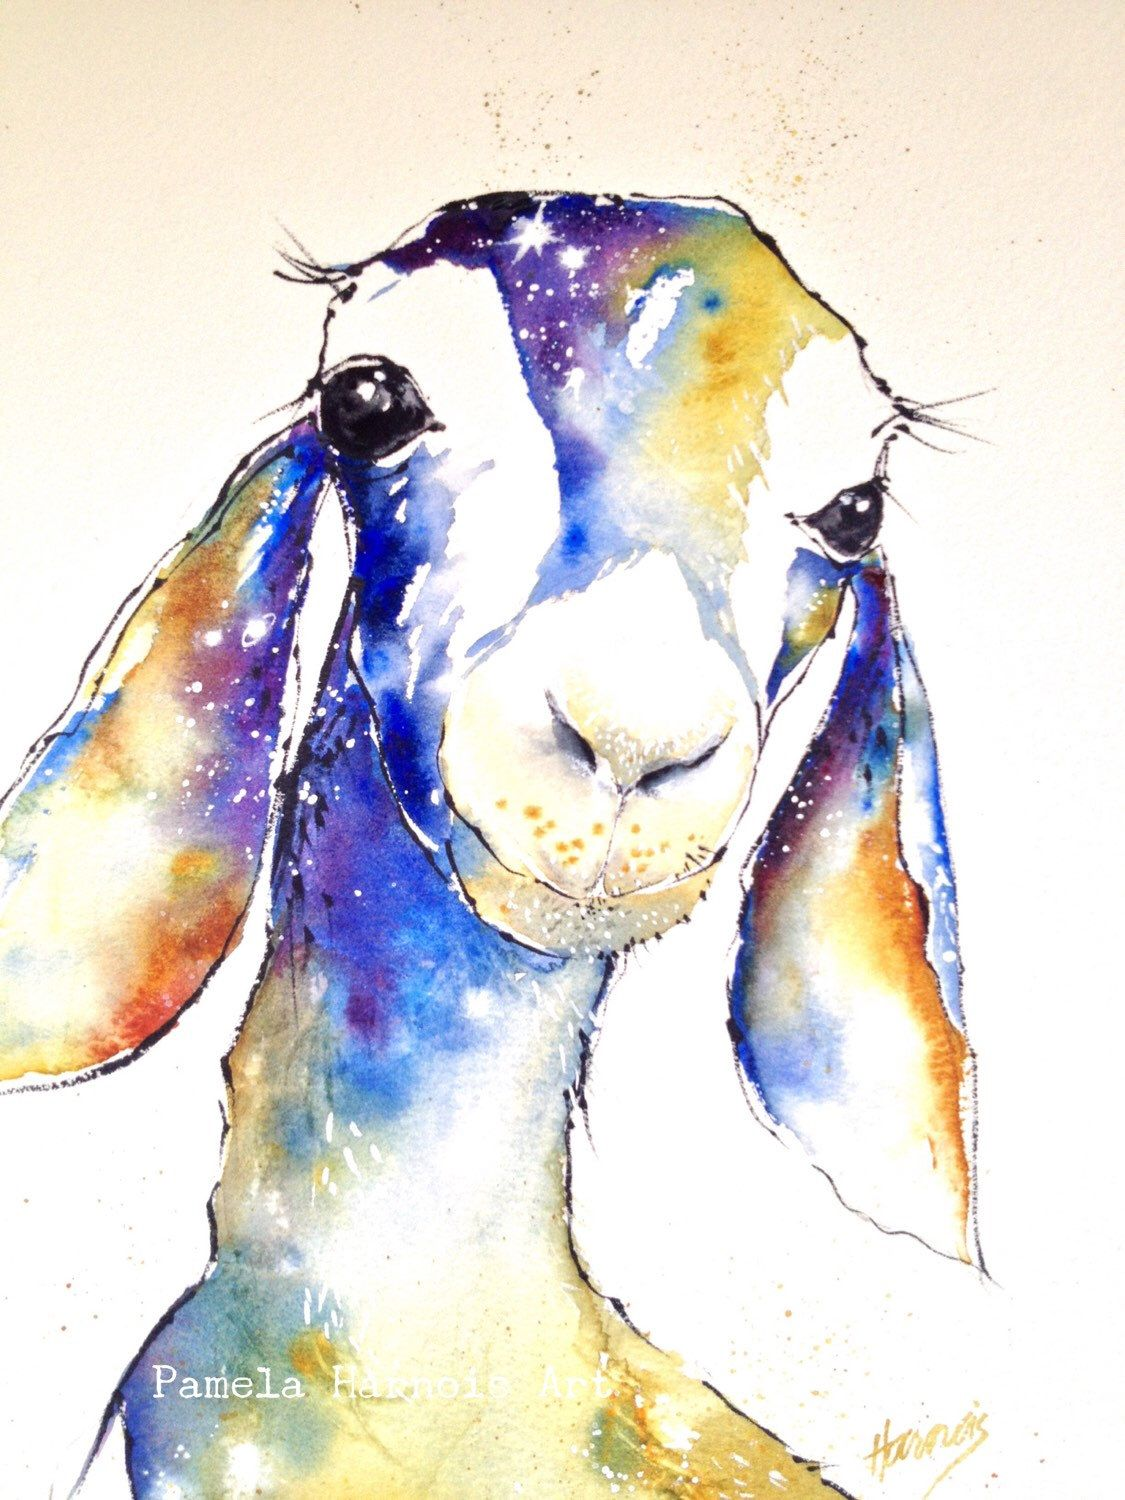 Merveilleux GOAT Art Print, Watercolor, Art Print, Farm Animal, Sheep, Wall Decor,  Animal Art, Kidu0027s Art, Goat Art, Birthday Gifts